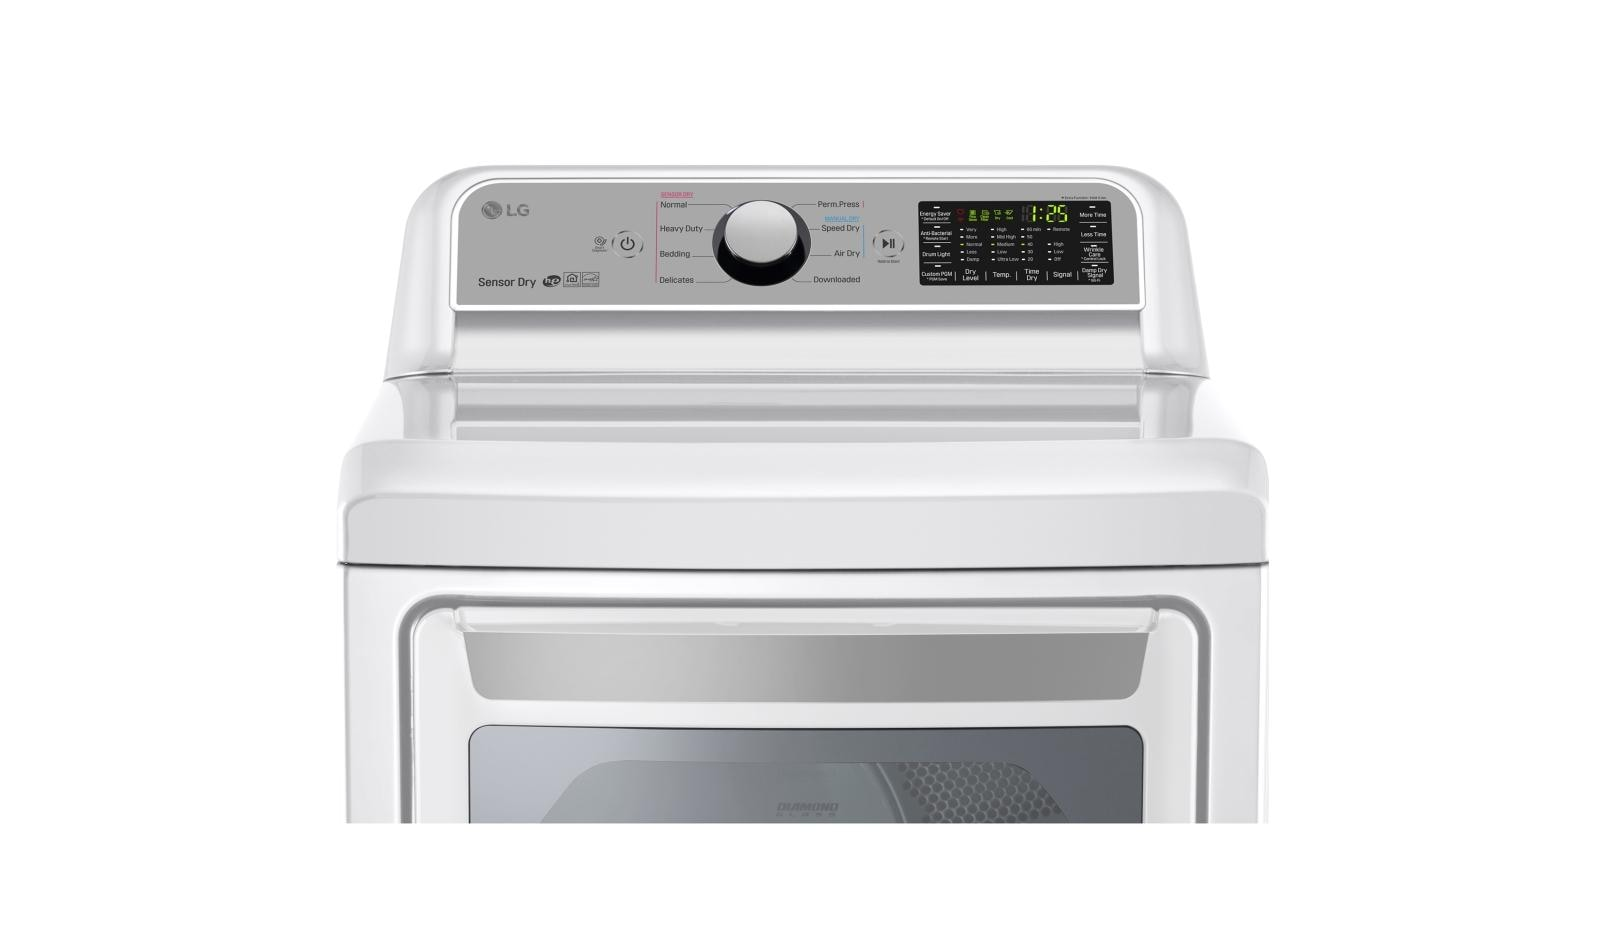 LG DLE7200WE: Super Capacity Electric Dryer with Sensor Dry | LG USA